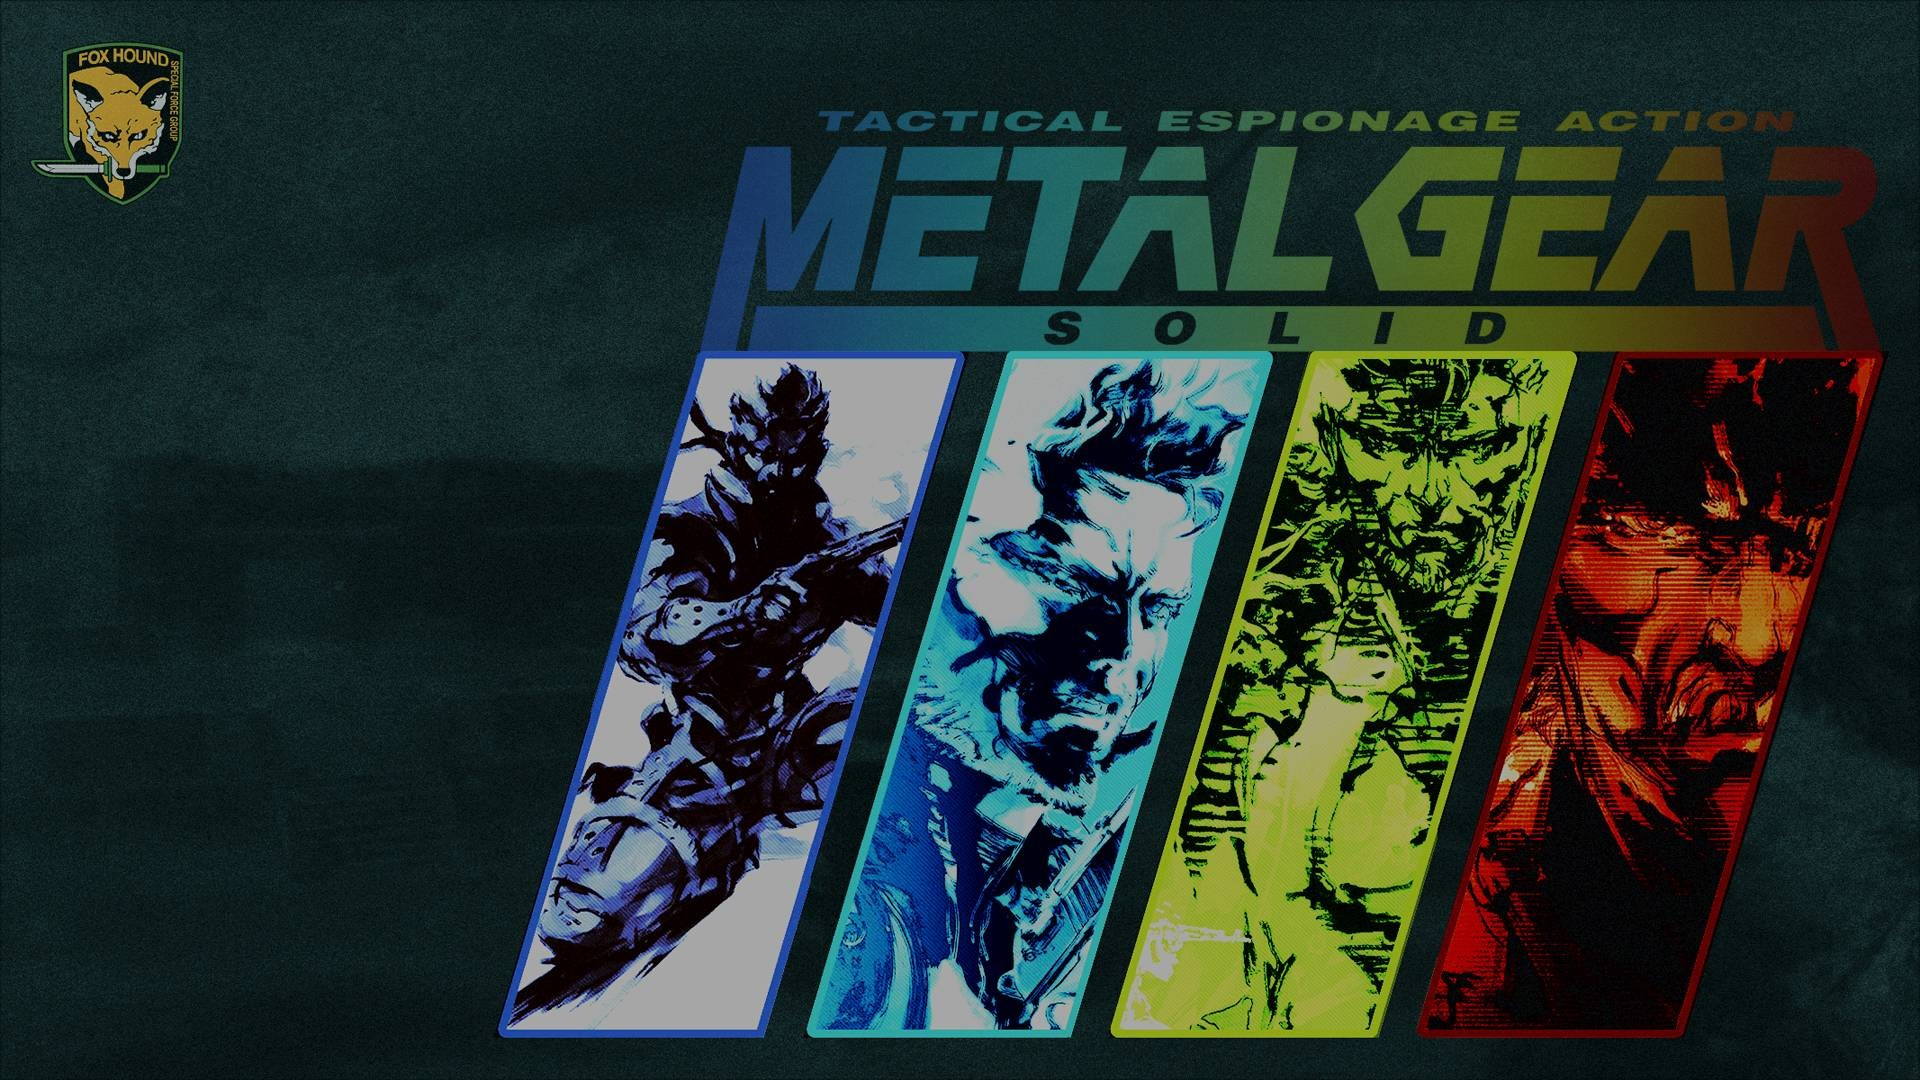 metal gear solid one wallpapers – DriverLayer Search Engine